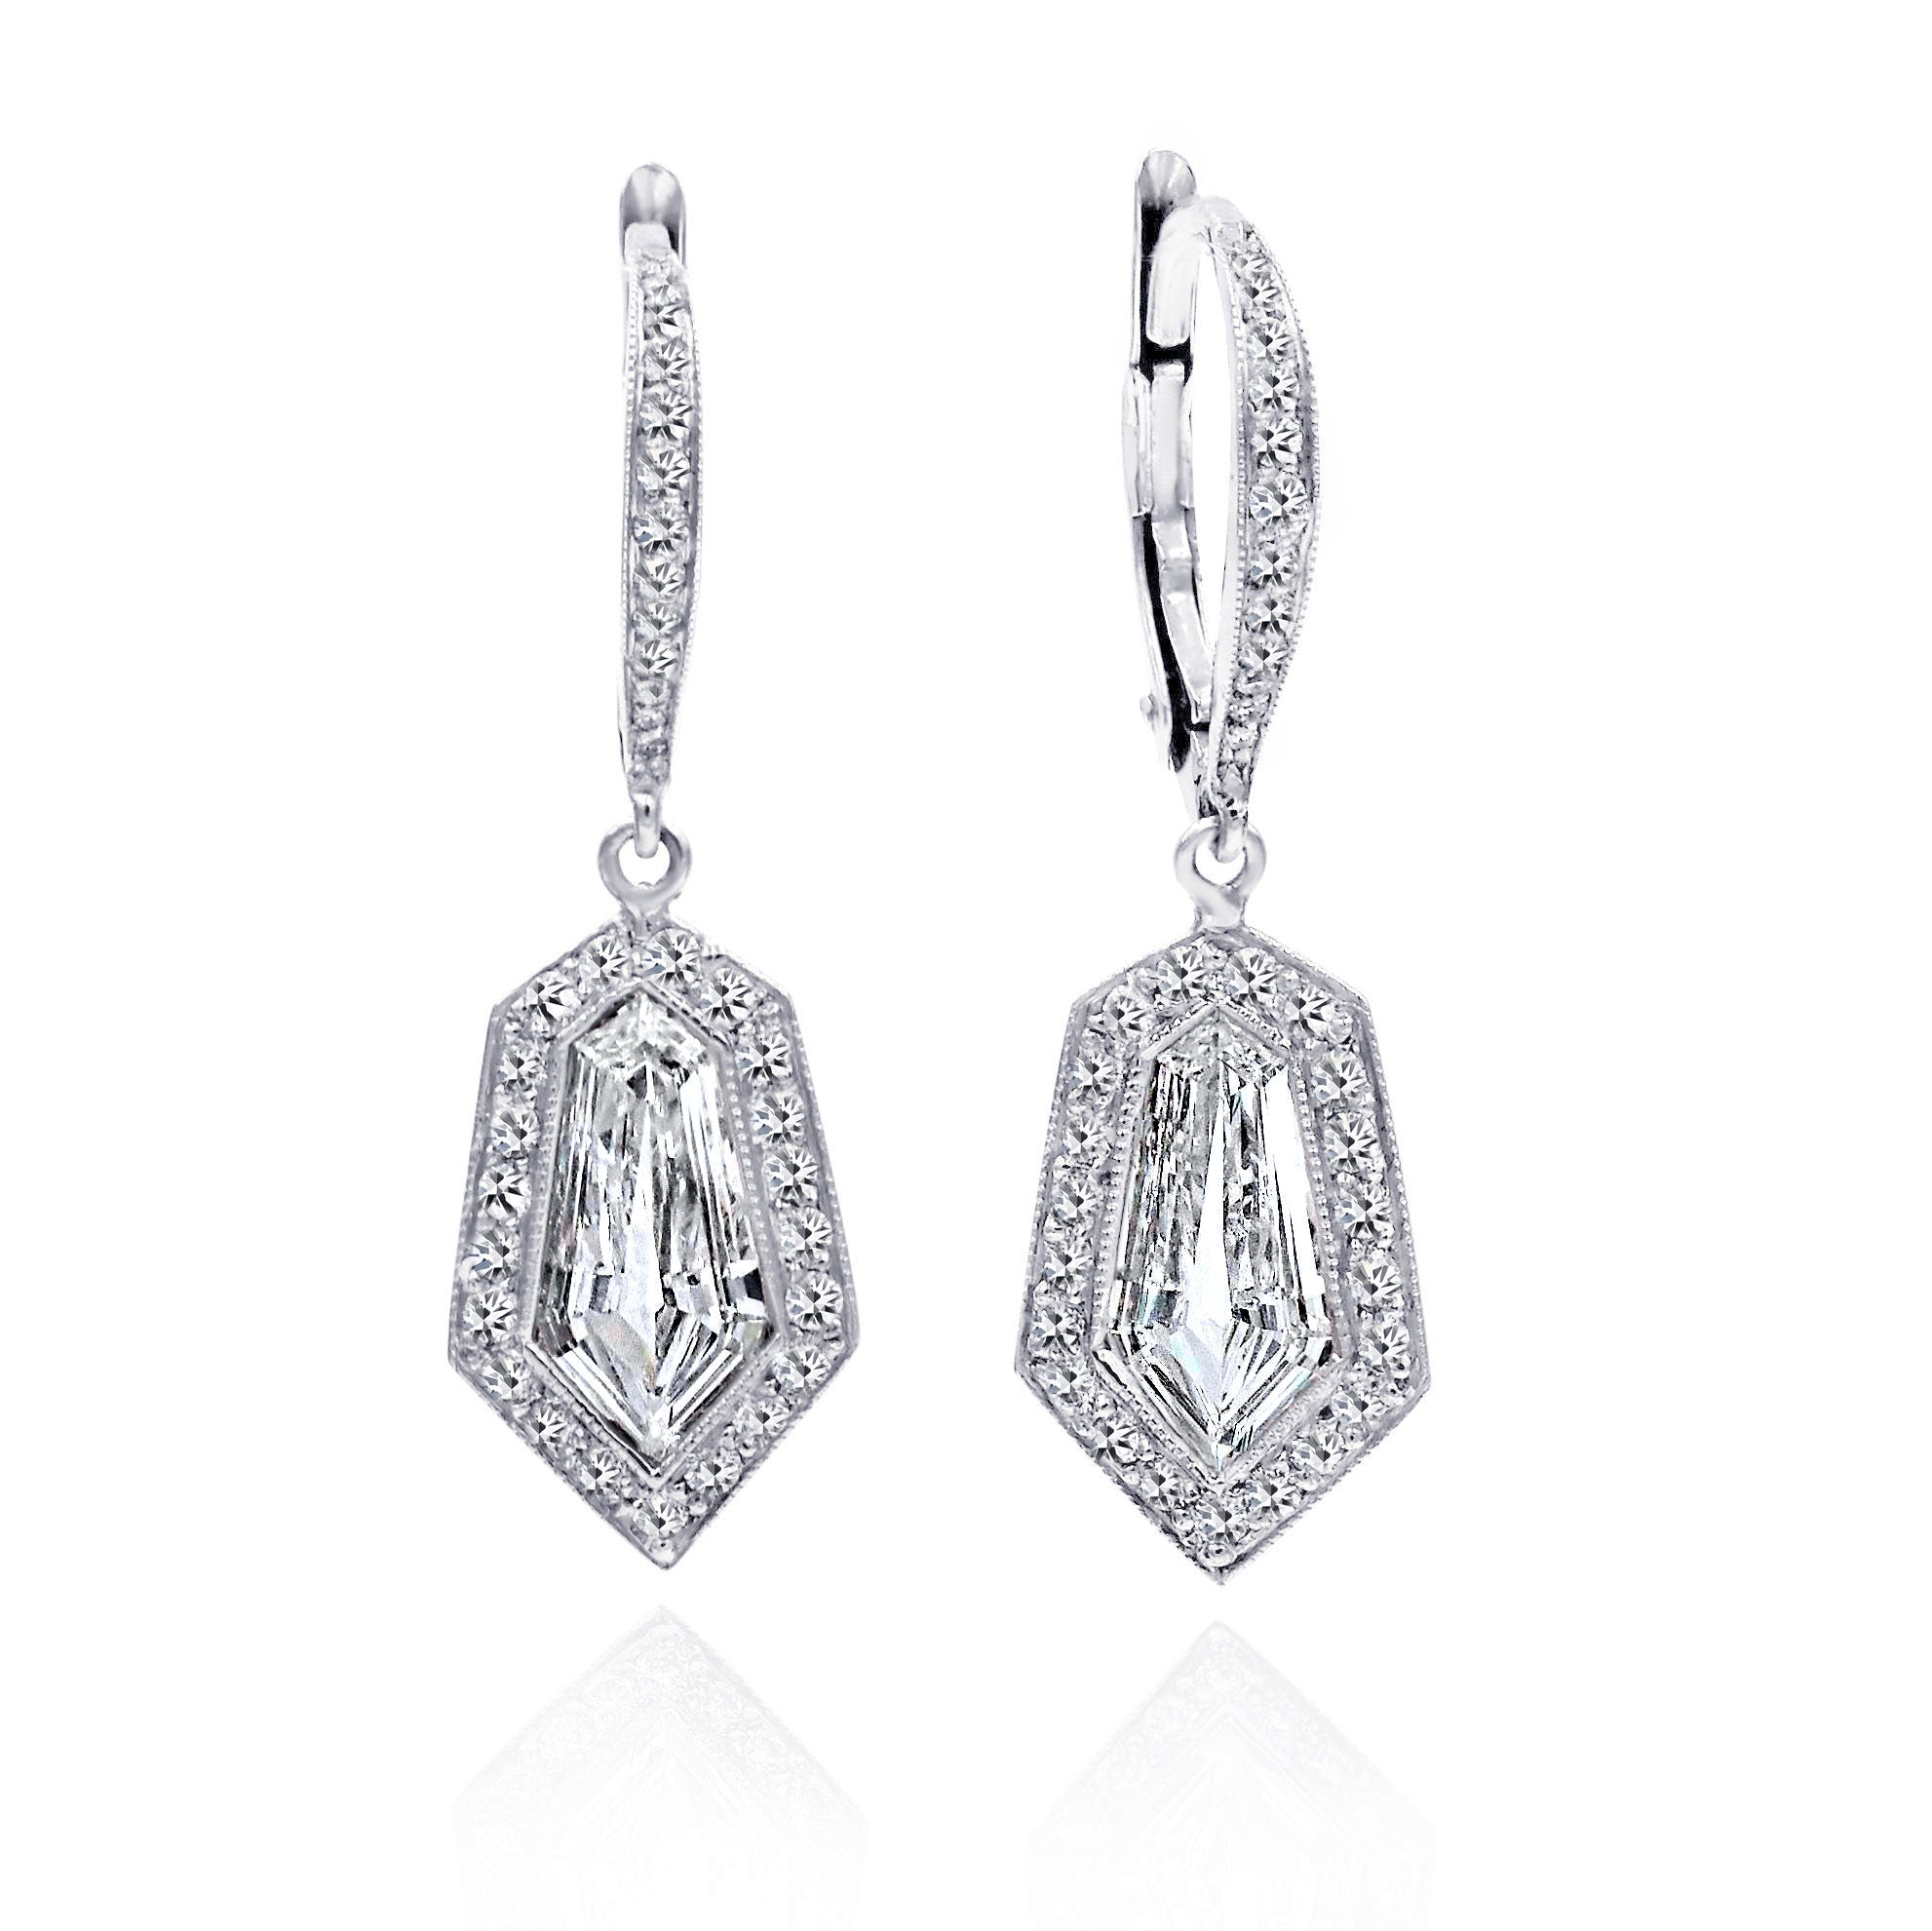 JB Star Platinum Halo Earrings with Kite Shaped Diamonds